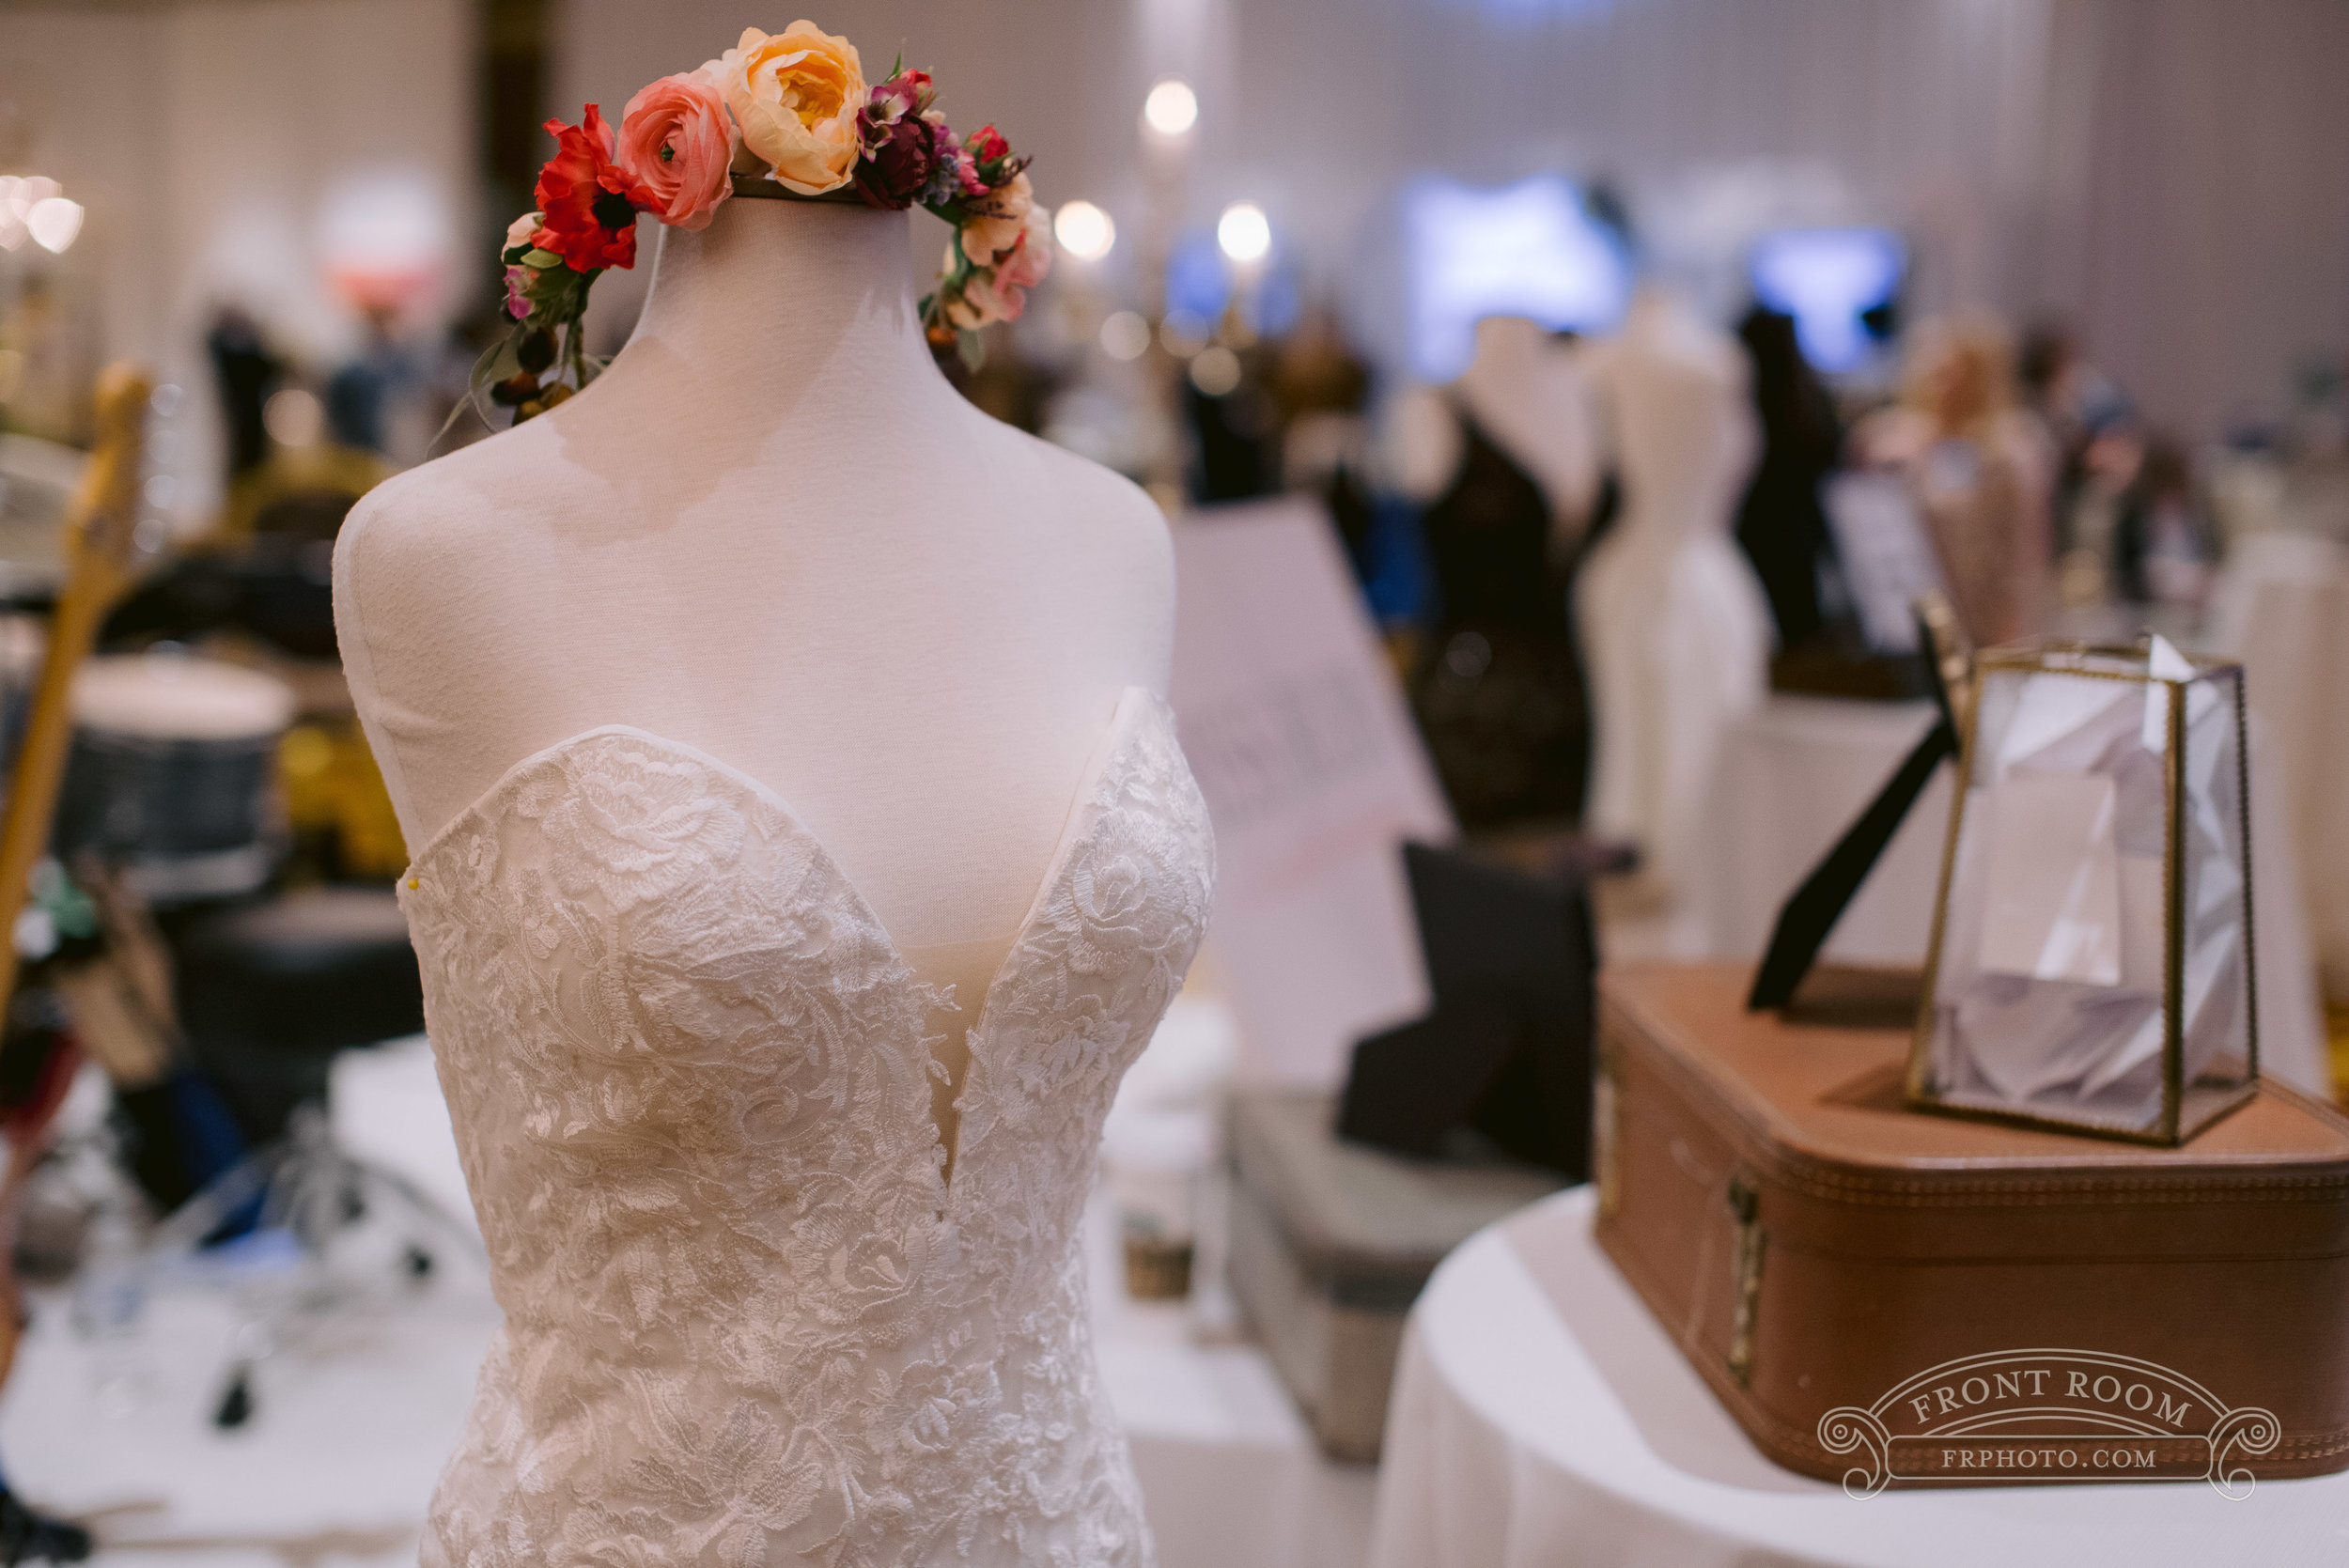 coming soon - Milwaukee's Magnificent Wedding ShowSunday March 1, 2020